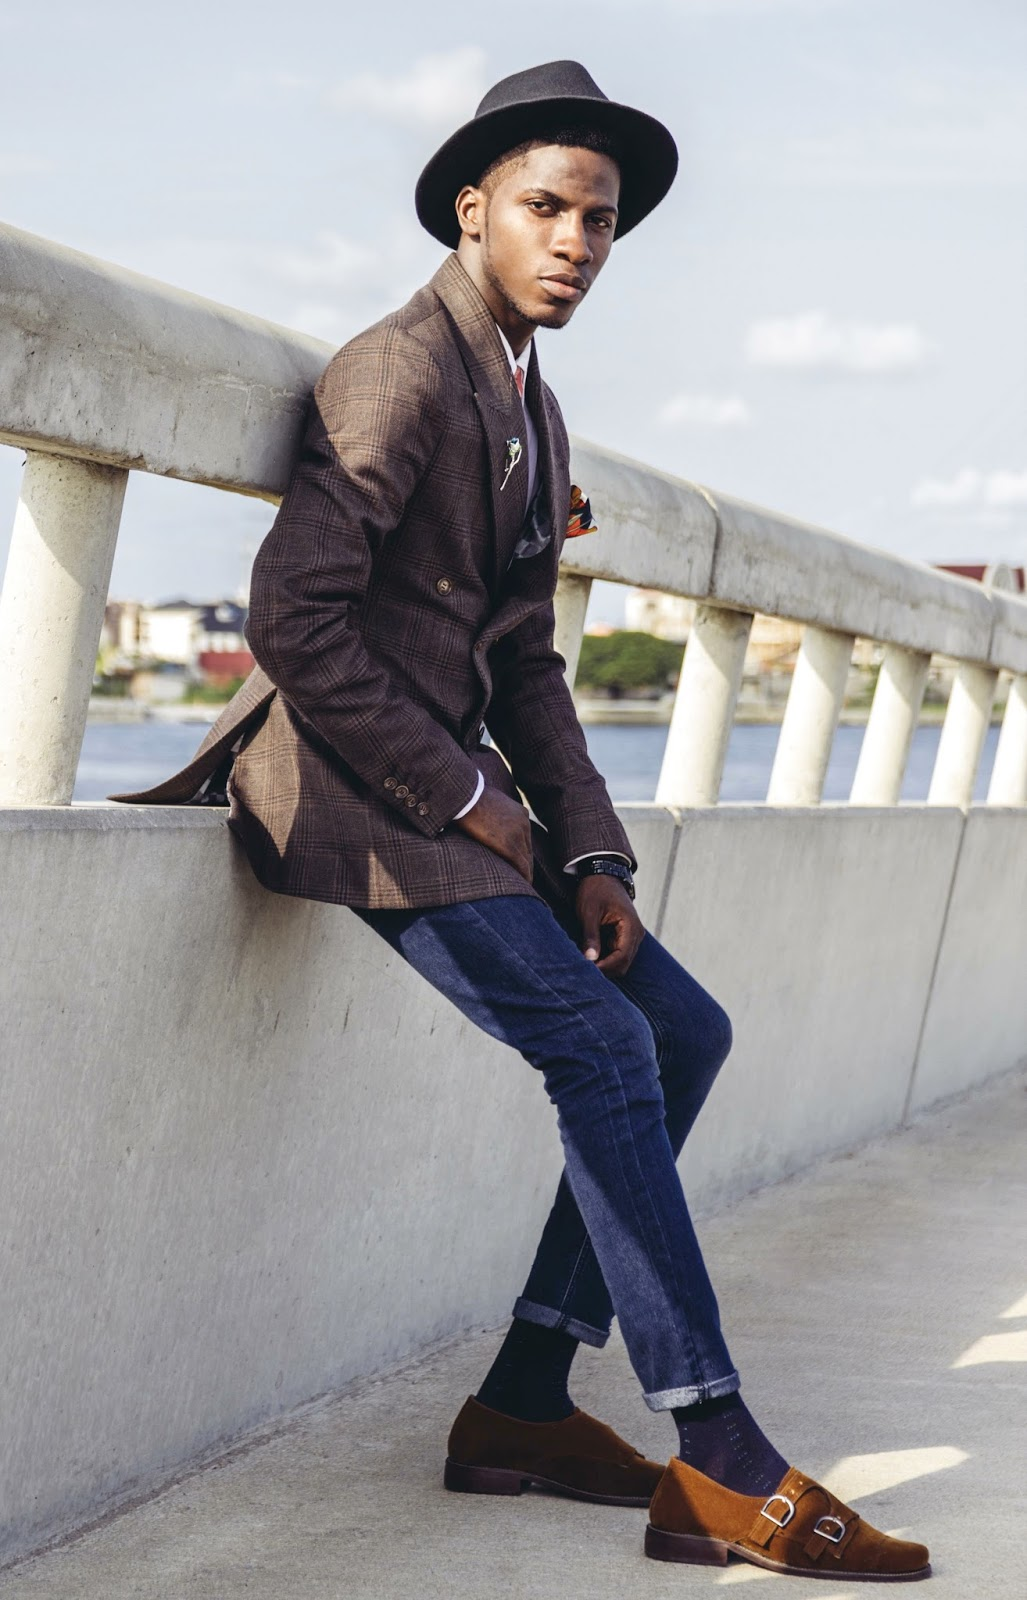 My Top 10 Nigerian Male Fashion Bloggers Based In Nigeria Mide Coker